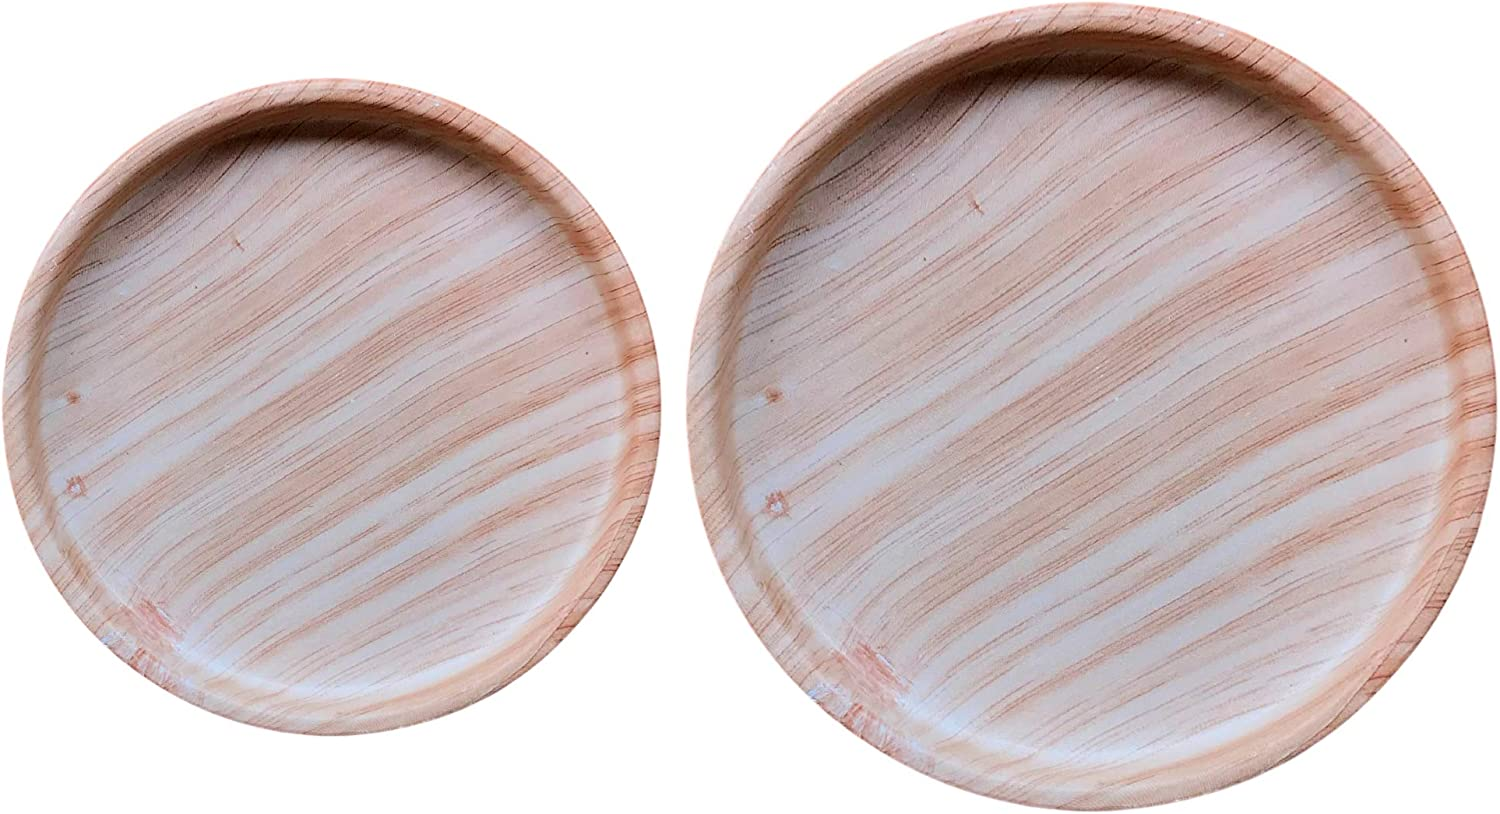 Ceramic Plant Saucer 2 Pack of 4 and 6 inch   Plant Trays for Indoors   Drip Trays   Plant Pot Saucer (Wooden Grain)